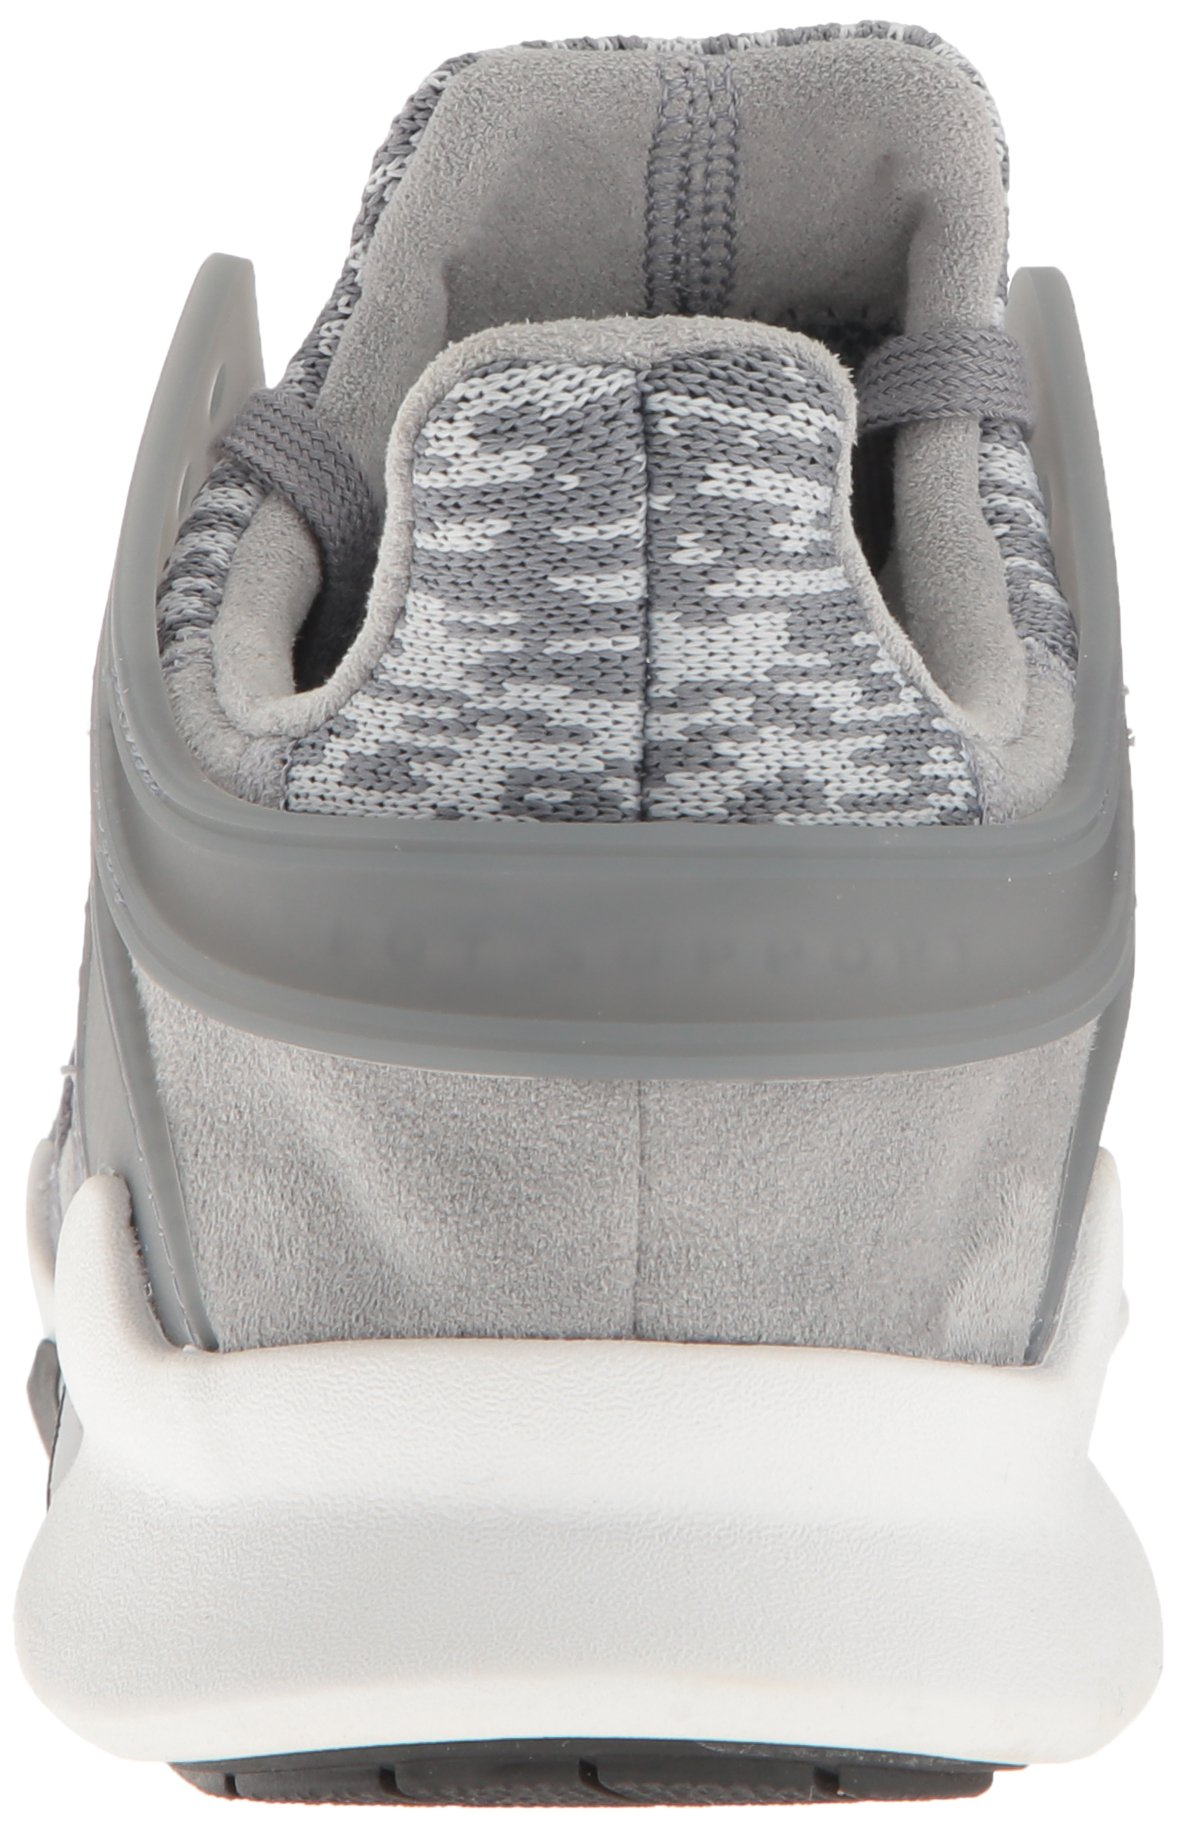 adidas Originals Boys' EQT Support ADV J Running Shoe, Tech Grey/White, 5.5 M US Big Kid by adidas Originals (Image #2)